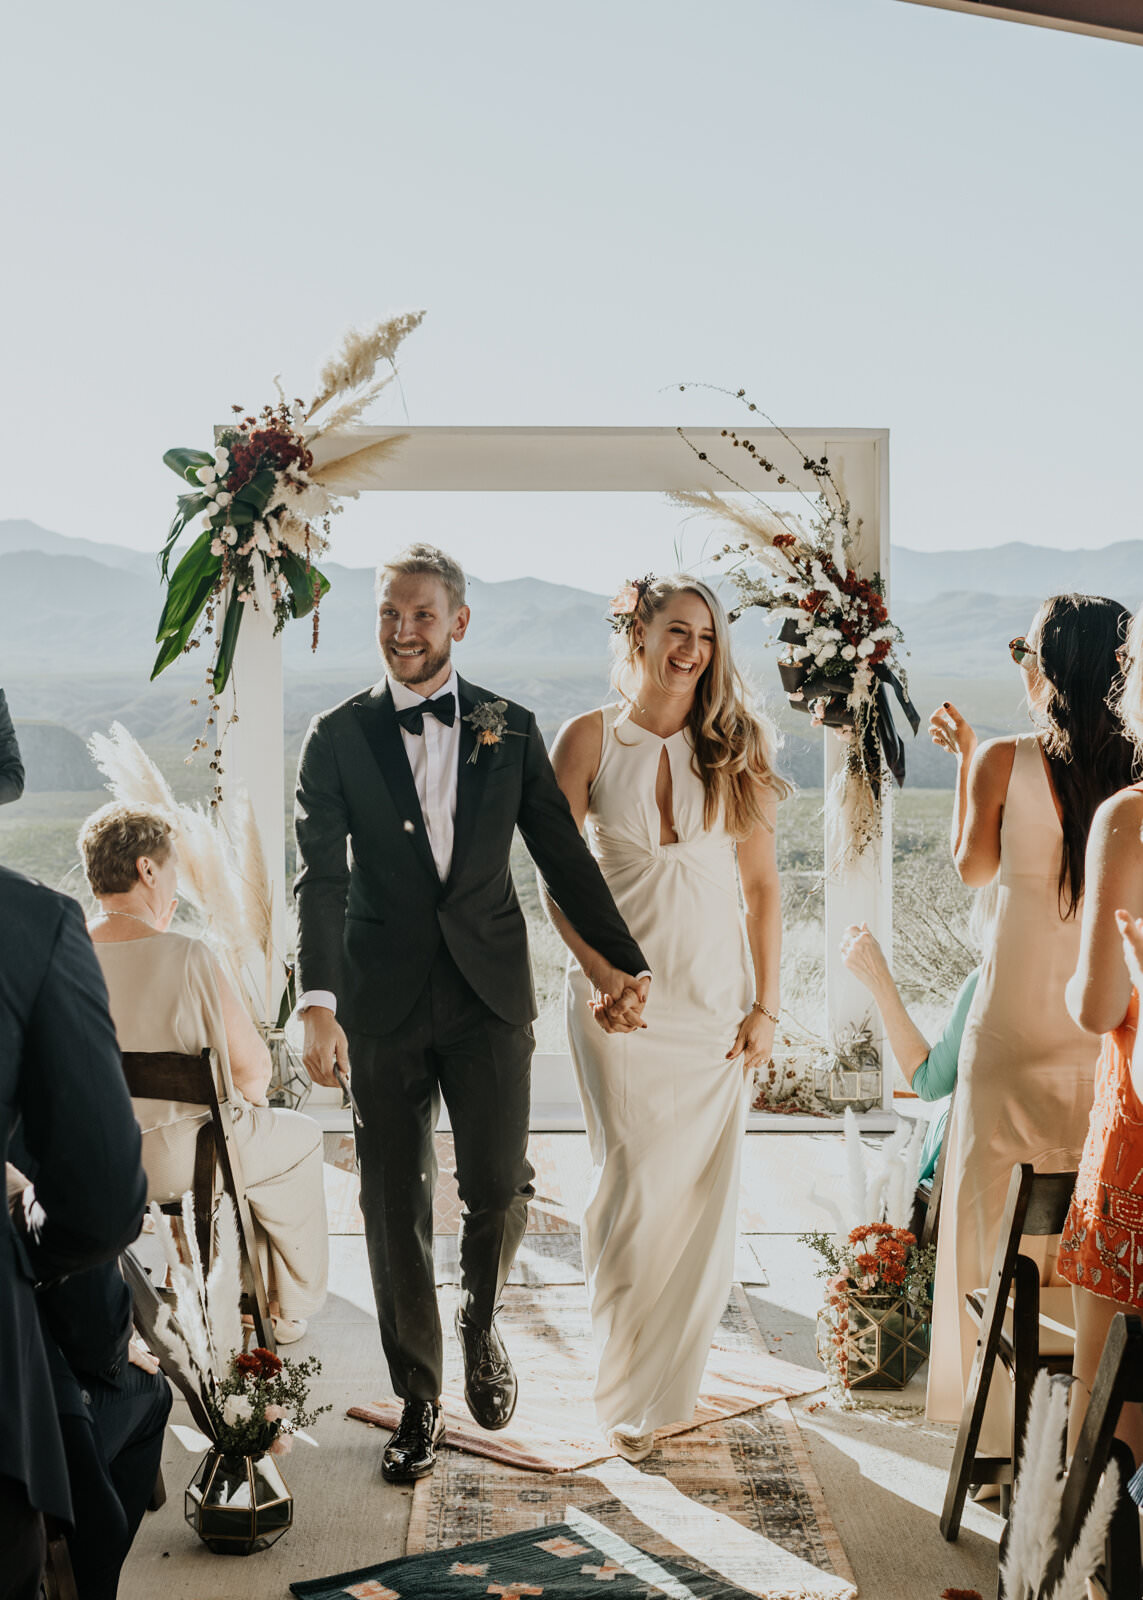 50 Stunning Images Of A Desert Wedding In Texas